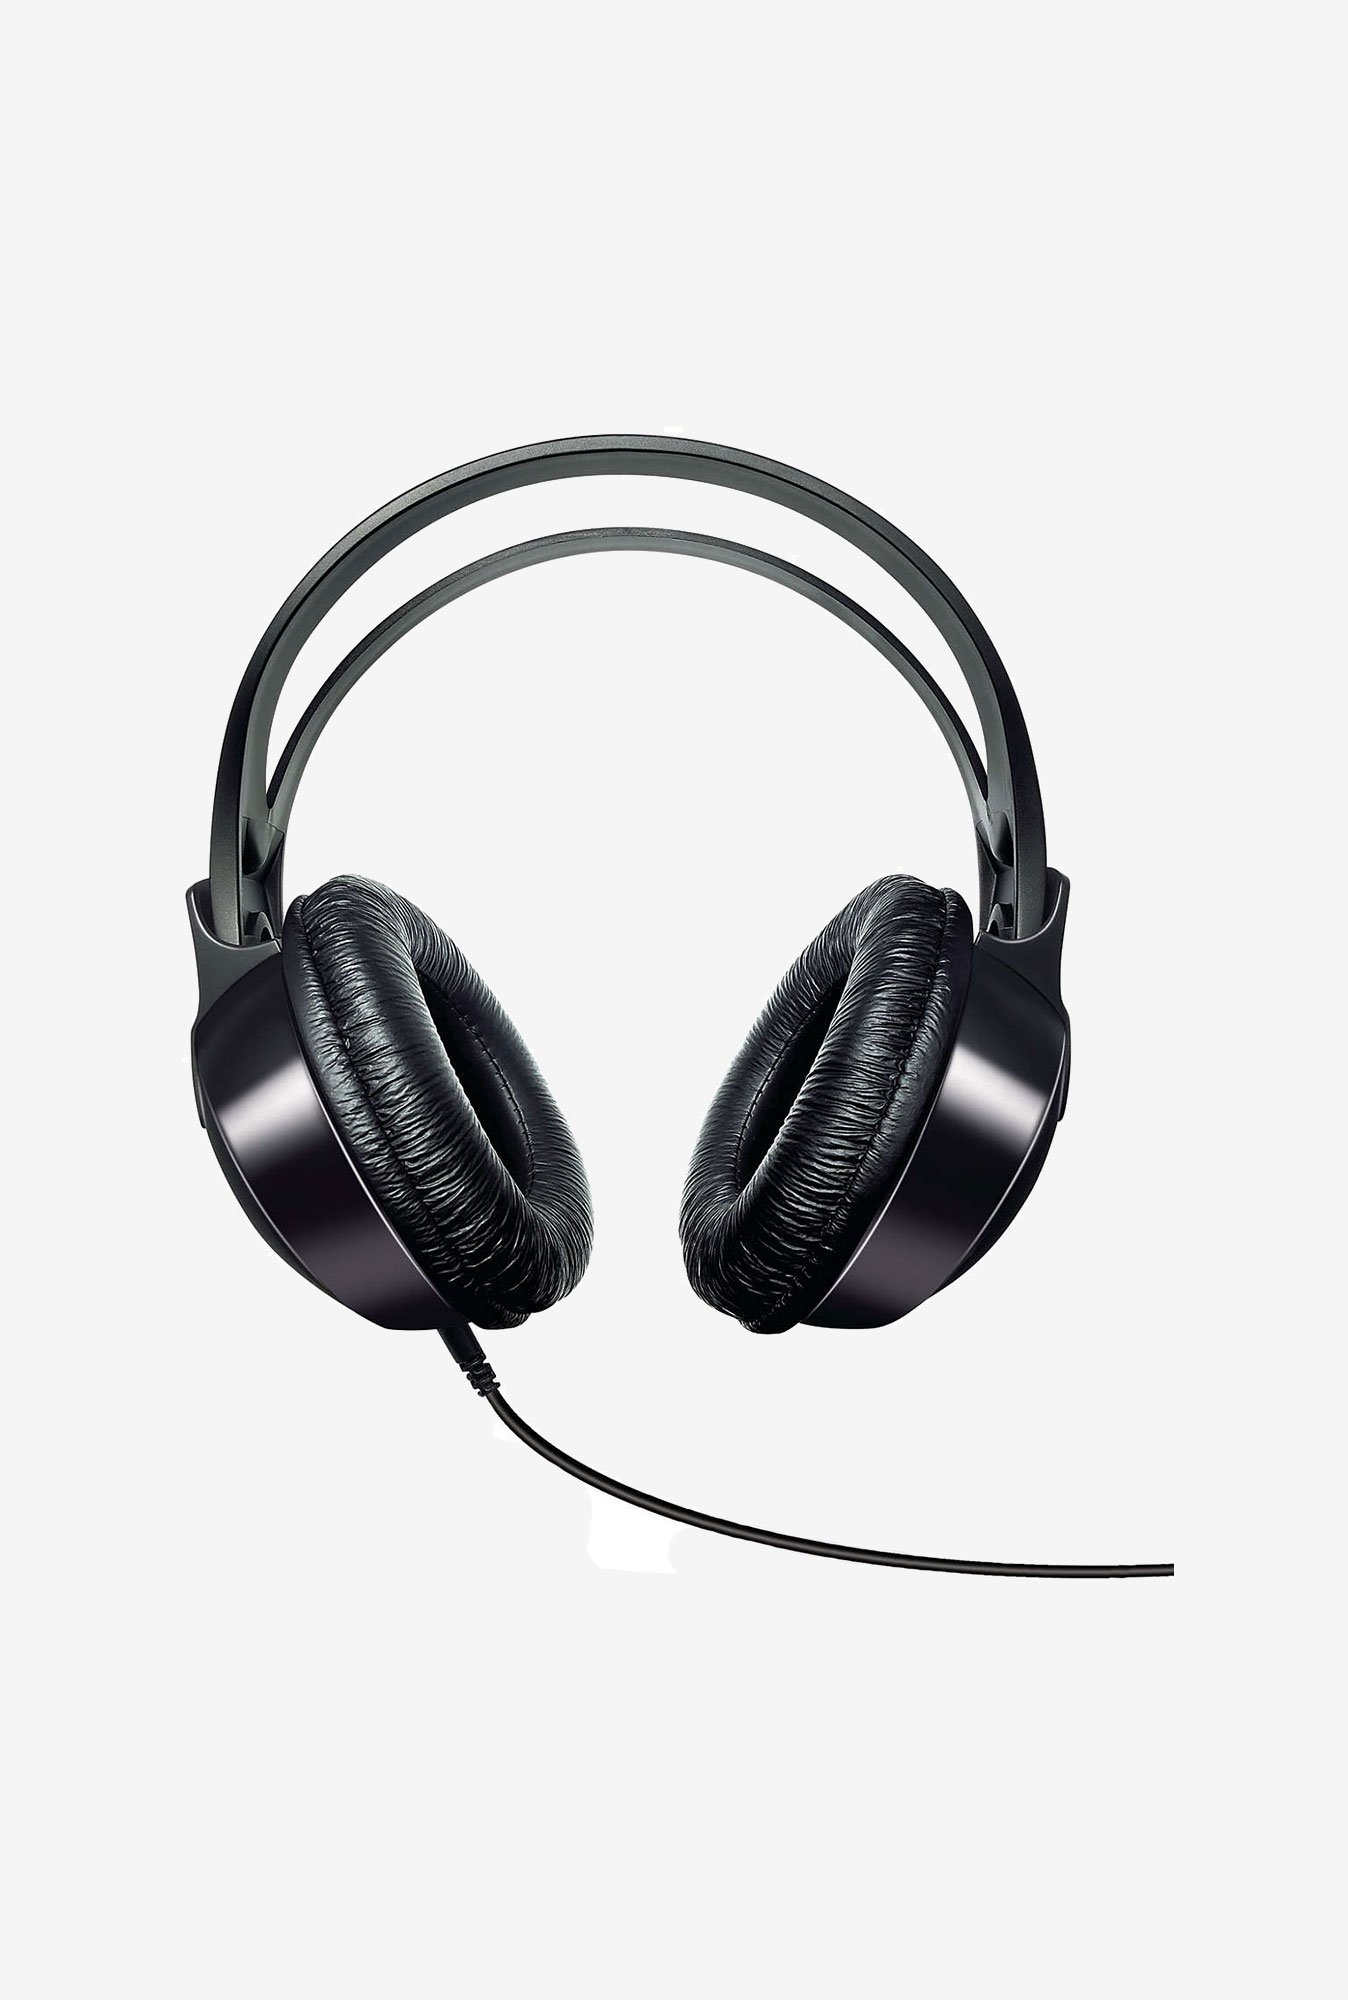 Philips SHP1901 Over the Ear Headphones